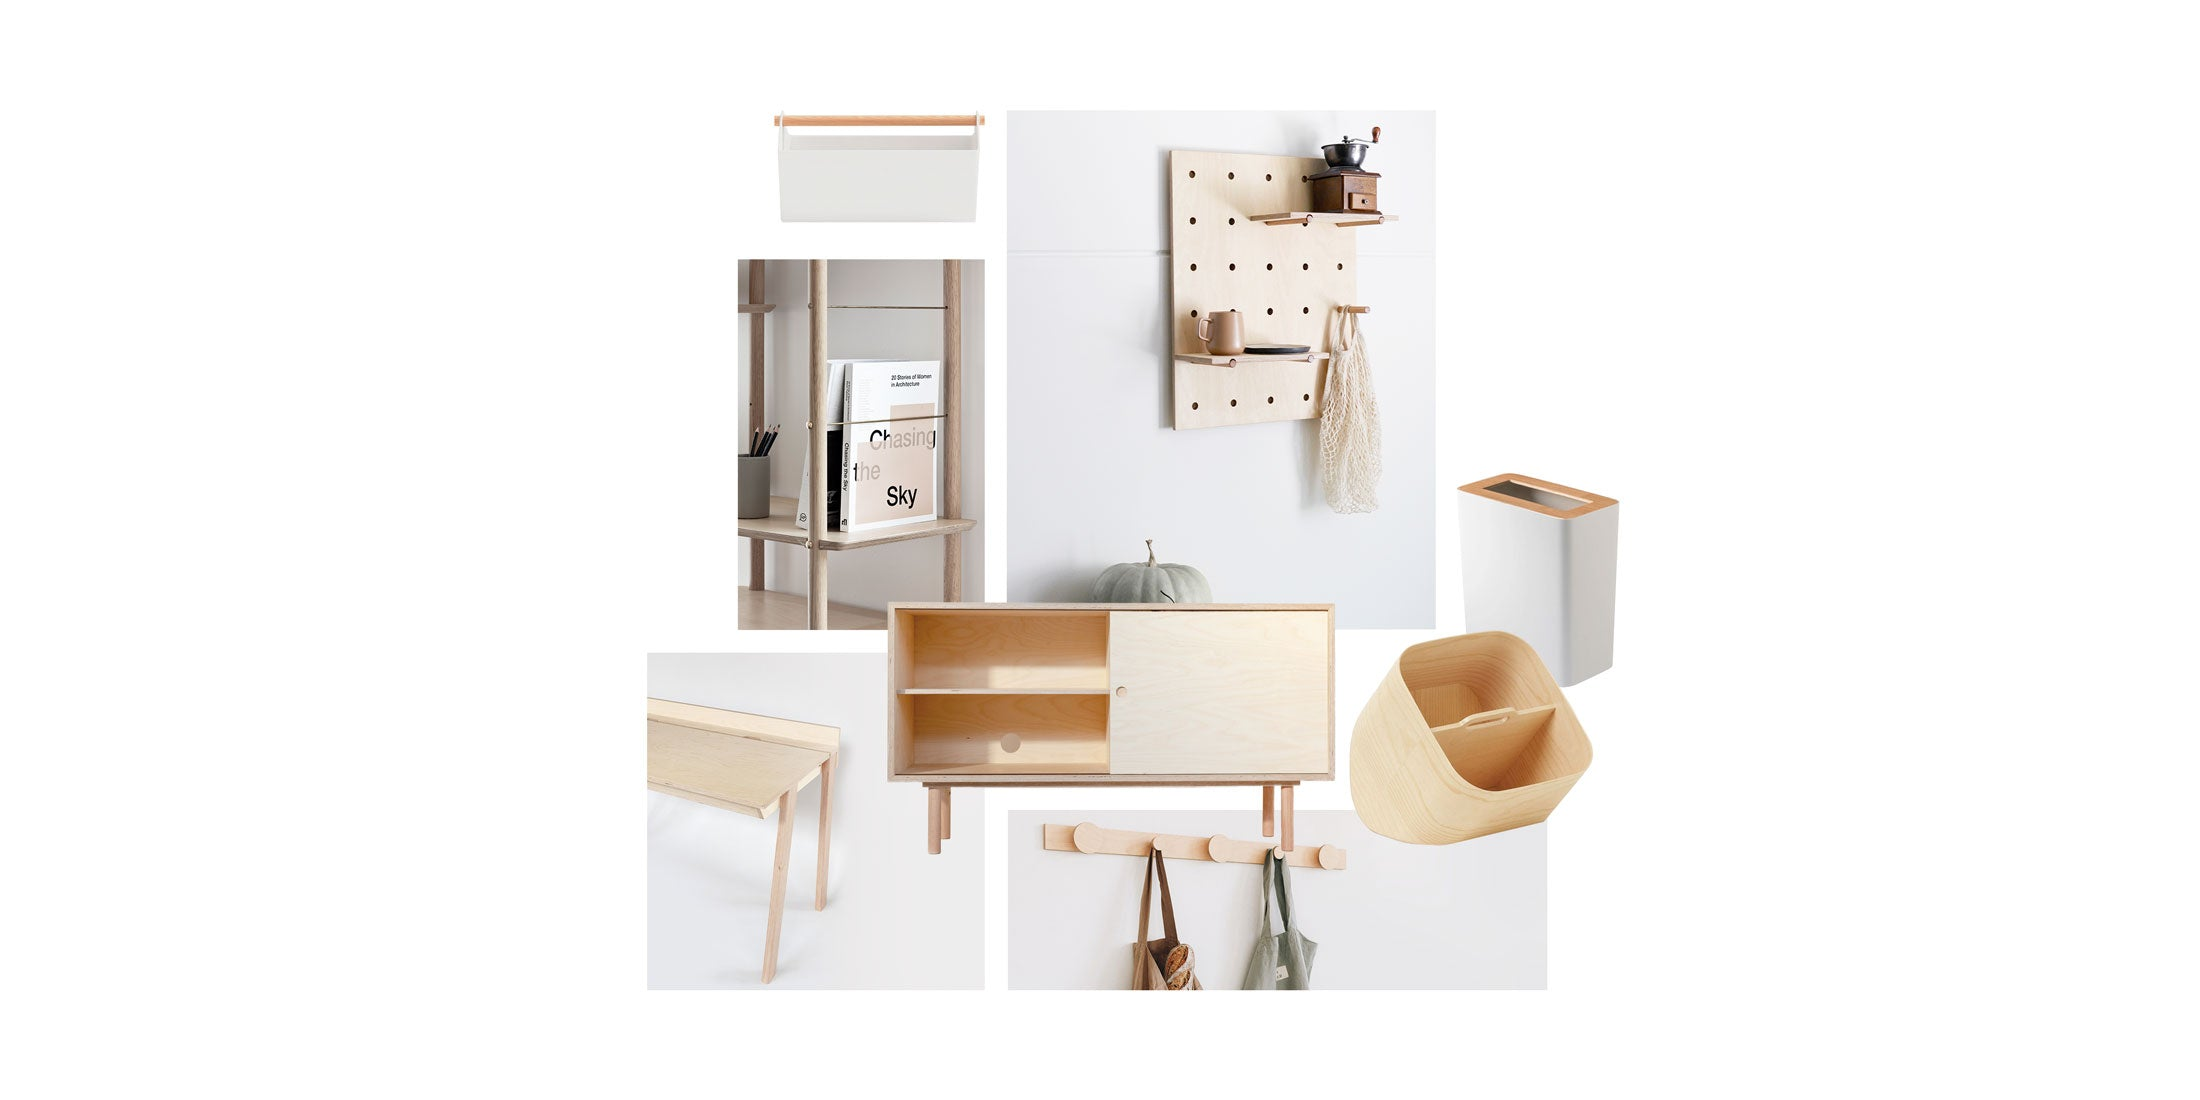 Plyroom Furniture for the Home Office Featured in The Design Chaser